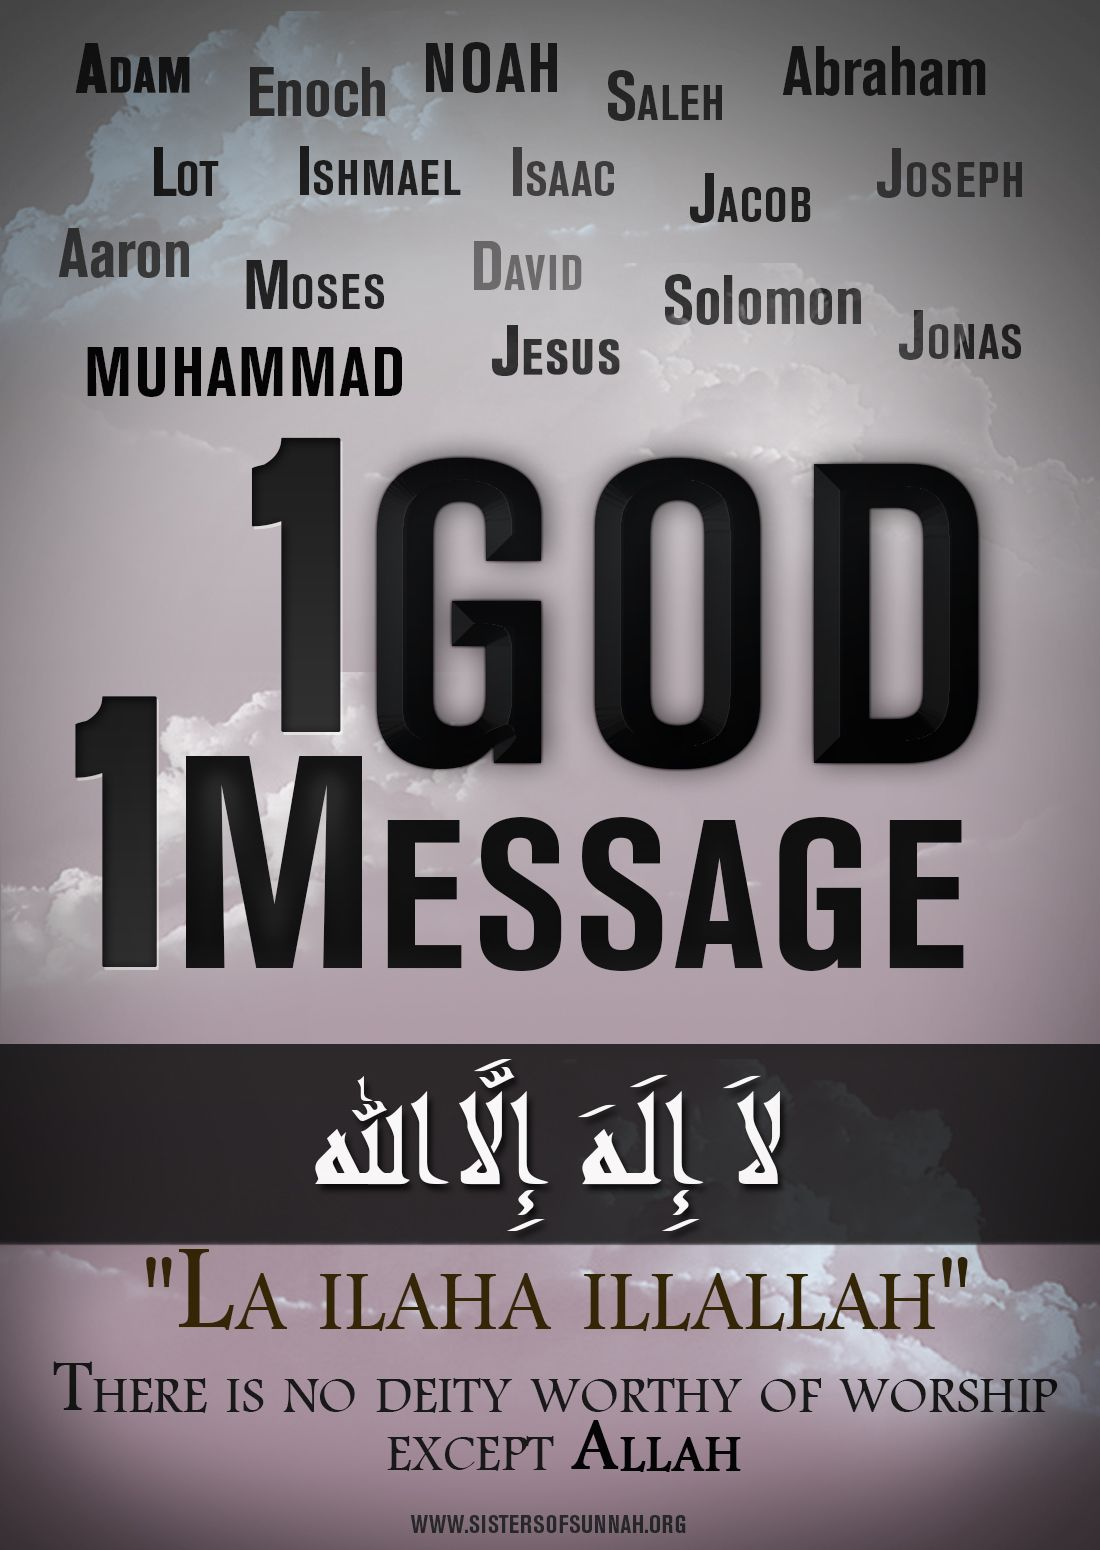 the message of islam theology Library - table of contents message to the black man our savior has arrived the fall of america how to eat to live book 1 how to eat to live book 2 the flag of islam theology of time.